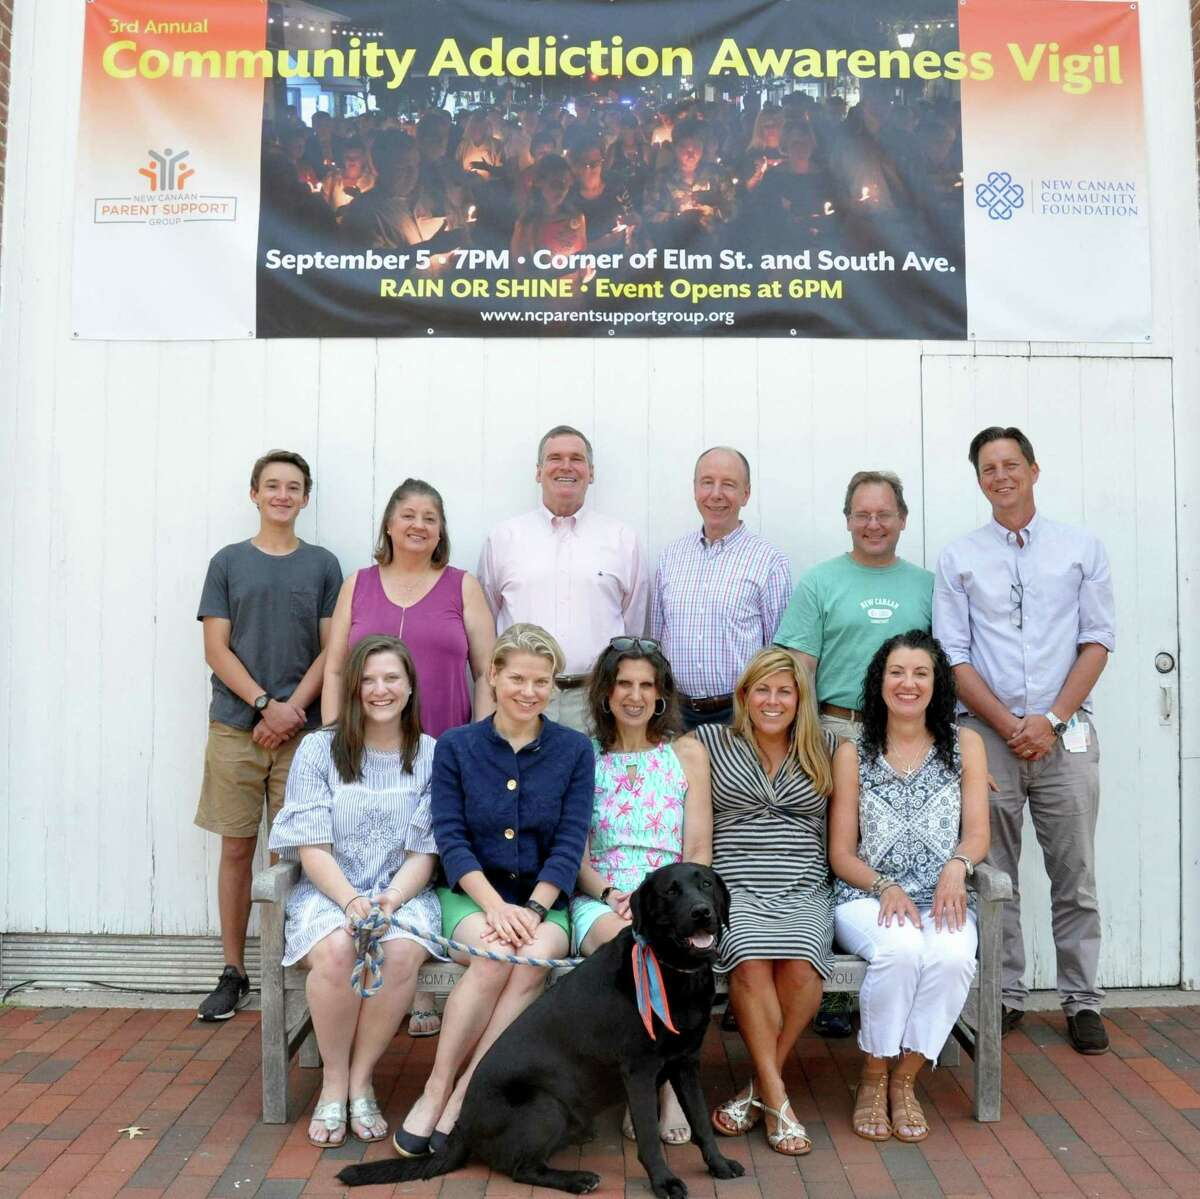 The New Canaan Parent Support Group, the New Canaan Community Foundation and other community partners have united to host the third annual Community Addiction Awareness Vigil at Elm Street a d South Avenue on Thursday, Sept. 5, starting at 6 p.m. In front are Nicole Kolenberg, New Canaan Community Foundation; Susannah Lewis, Silver Hill Hospital; Joyce Sixsmith, Ram Council; Jackie D'Louhy, Town of New Canaan; and Ellen Brezovsky, New Canaan CARES. In back are Ethan Jones, New Canaan High School Film student; Chris Otis, St. Aloysius Church; John Hamilton, Liberation Programs; Paul Reinhardt, New Canaan Parent Support Group; Derrick Fallon, St. Michael's Church and Peter Clark, Silver Hill Hospital.